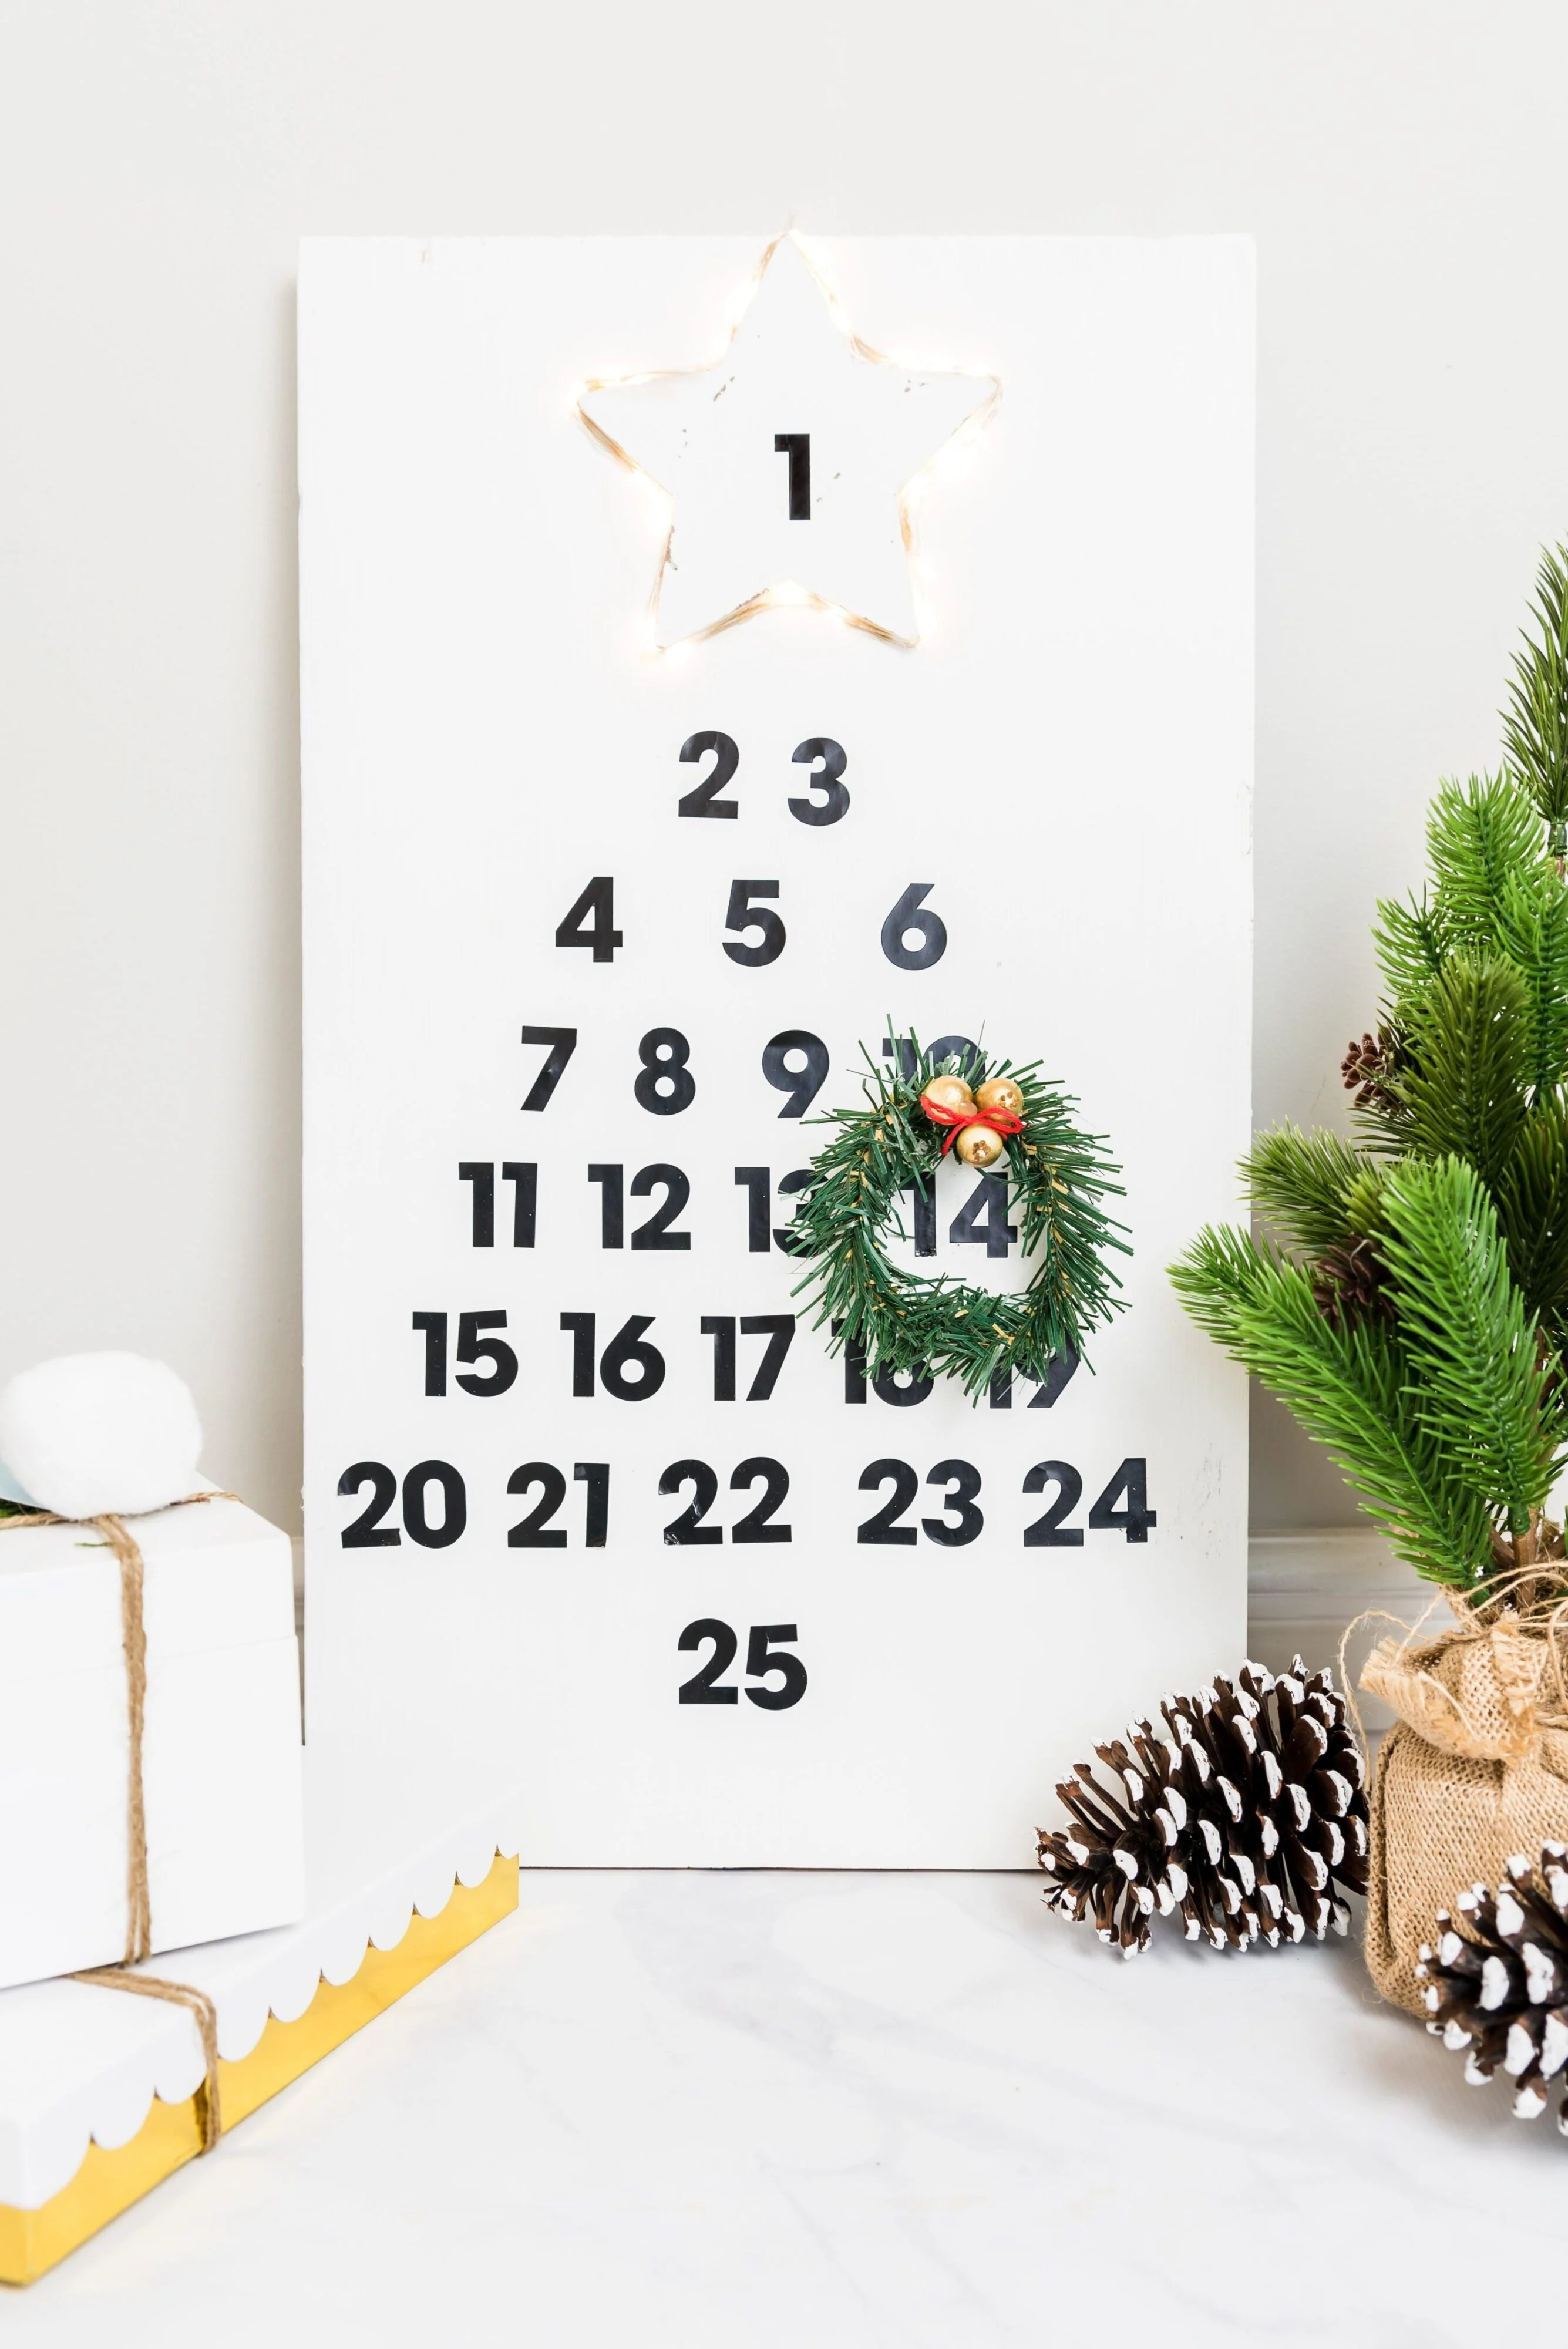 This easy DIY wooden advent calendar is such a simple project, even the kids can help